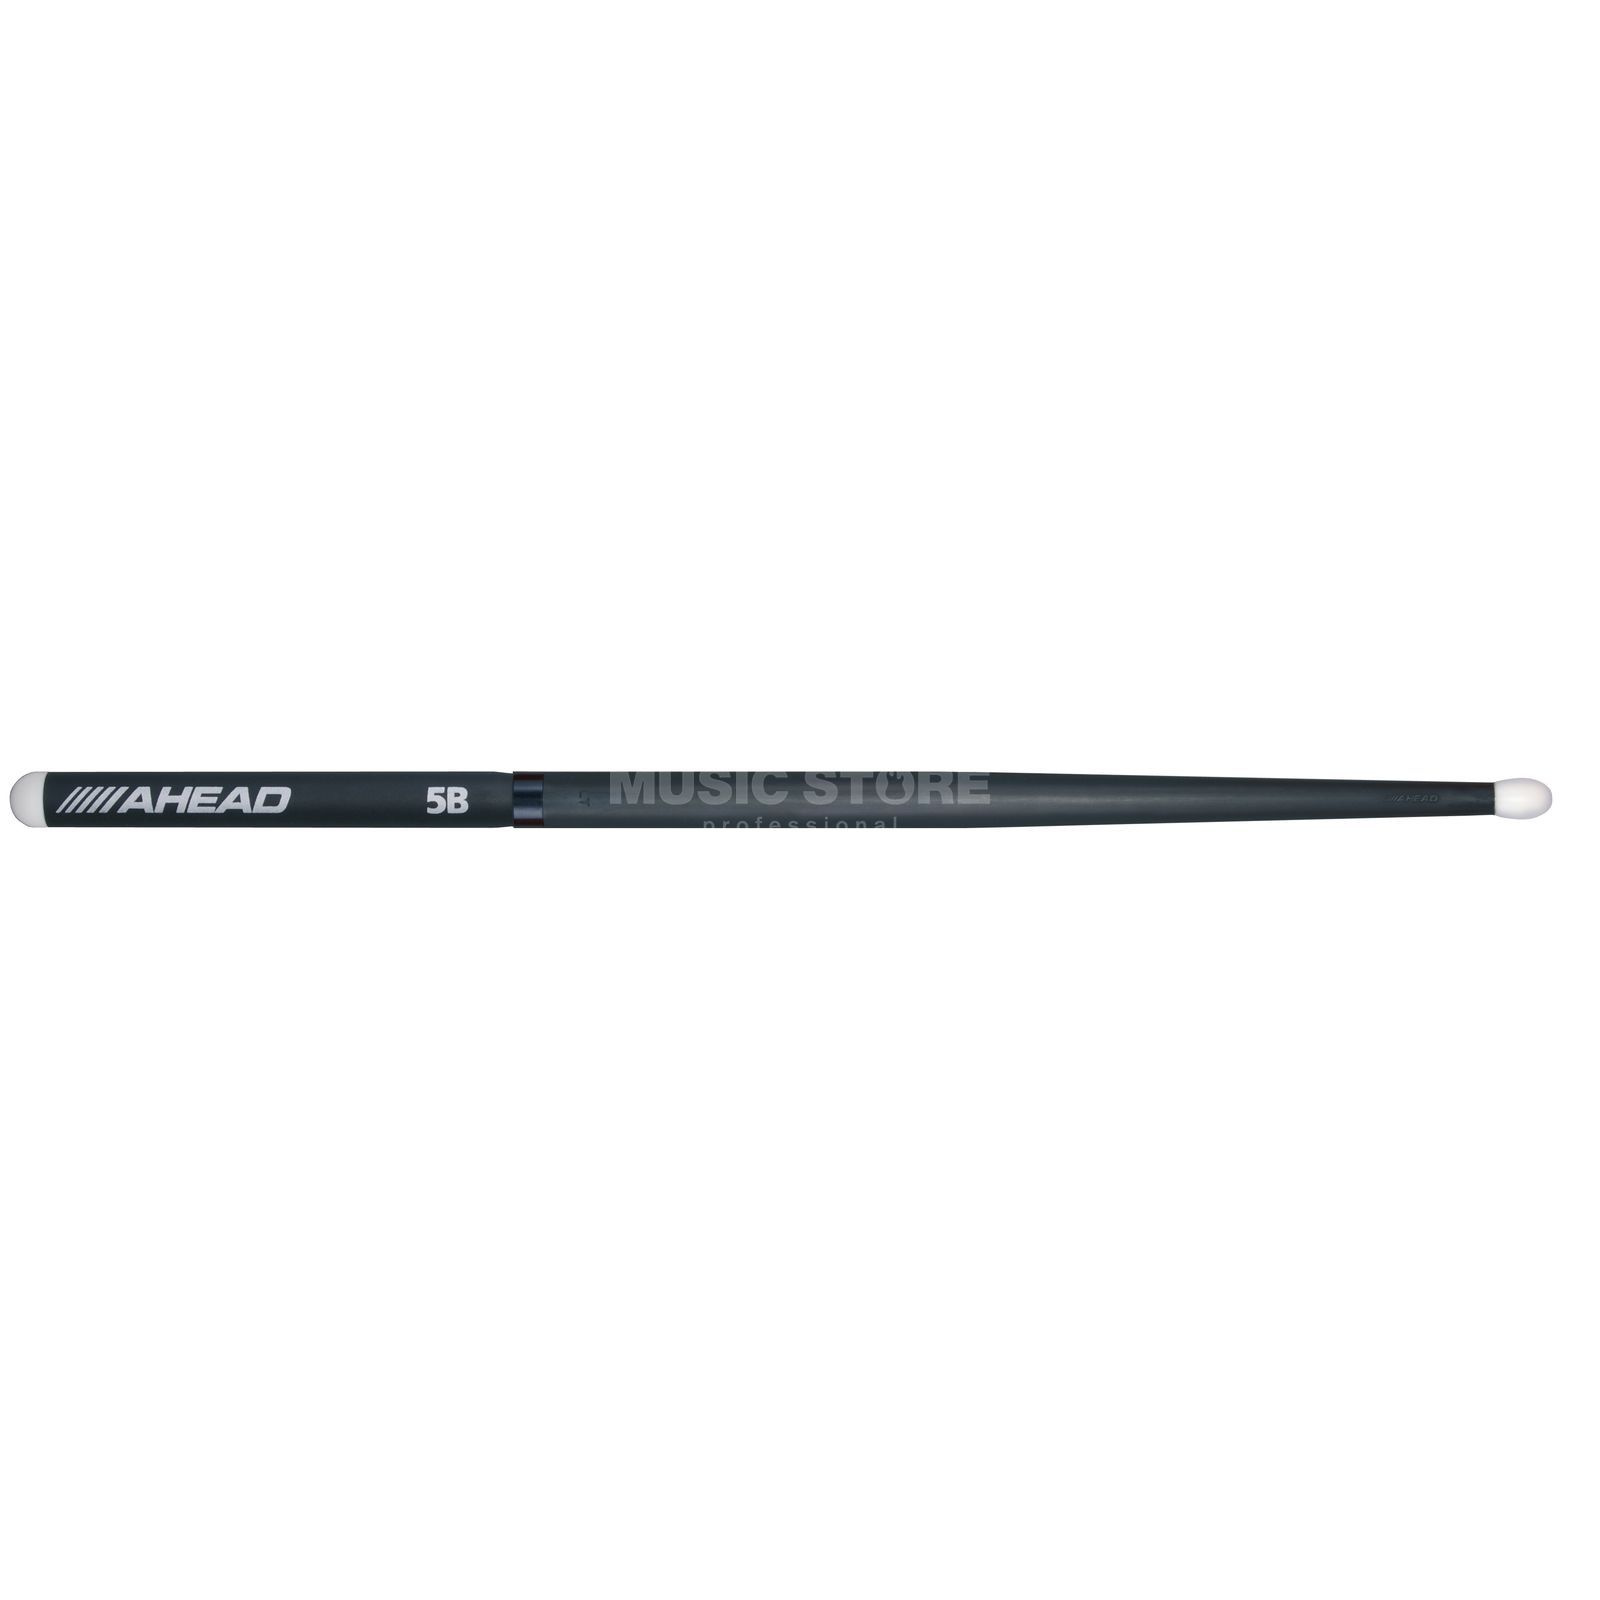 Ahead Sticks 5B Light Rock Aluminium Sticks Long Taper Produktbild